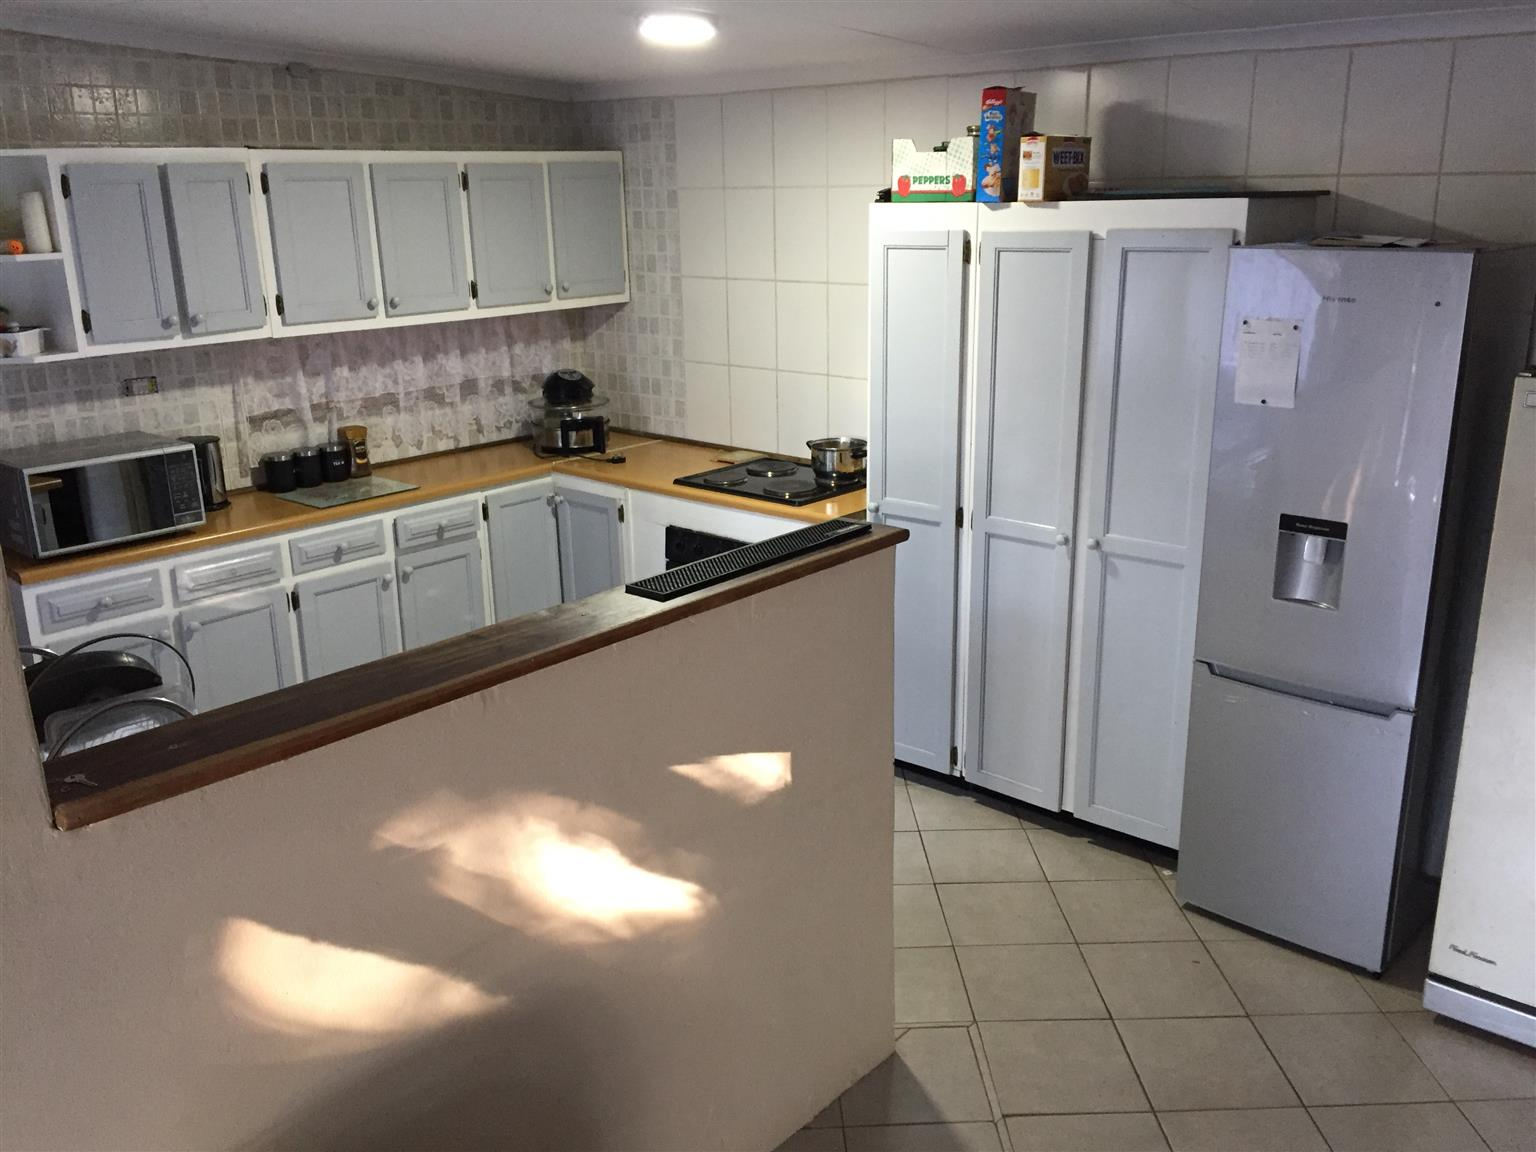 Guesthouse opportunity in Florauna - large house with two flatlets and lots of parking